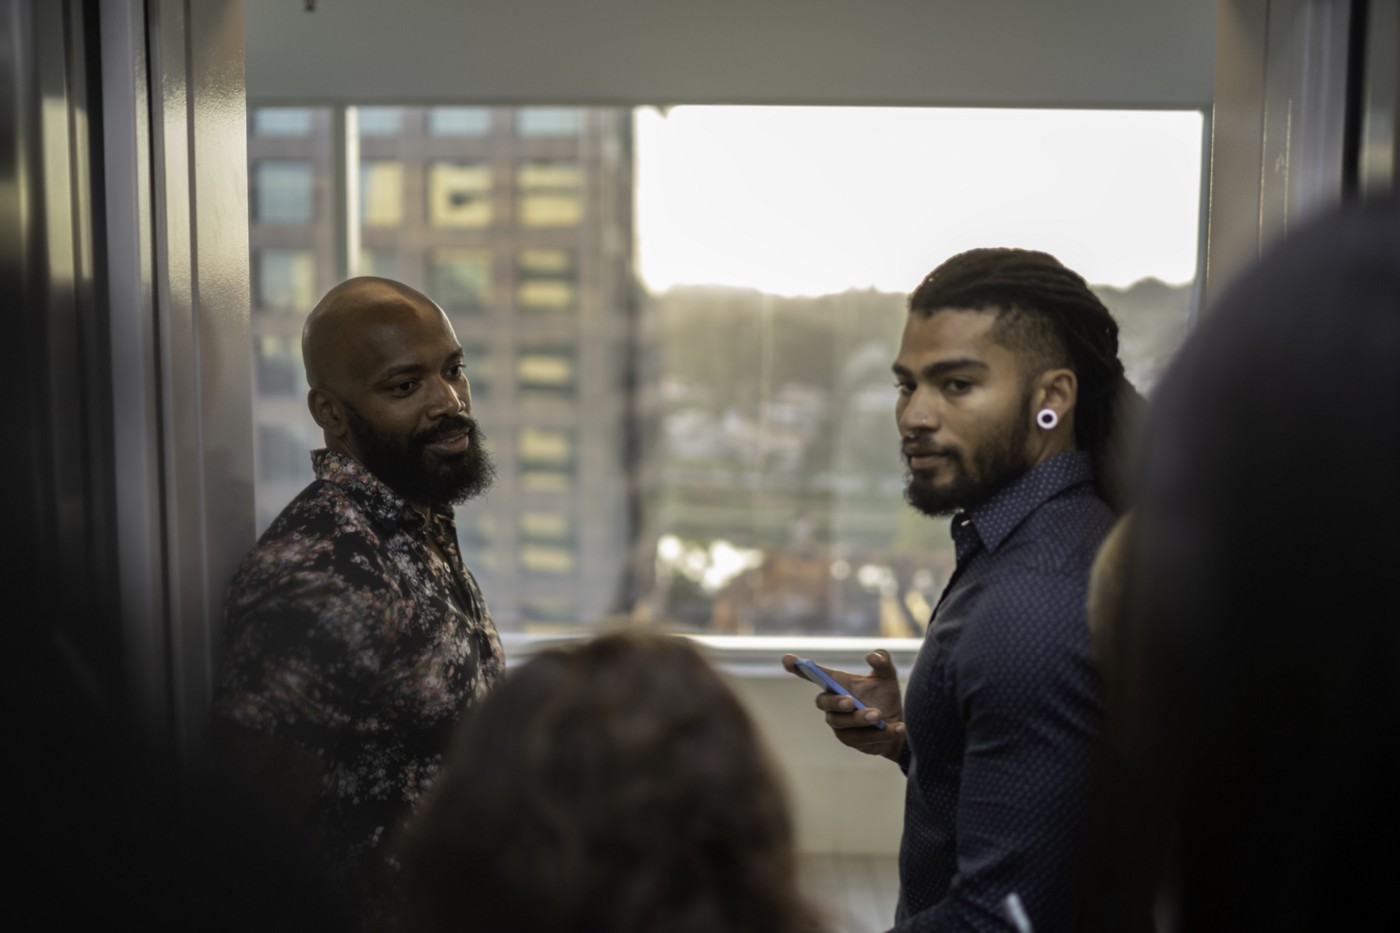 Two black men in front of an open elevator full of people.